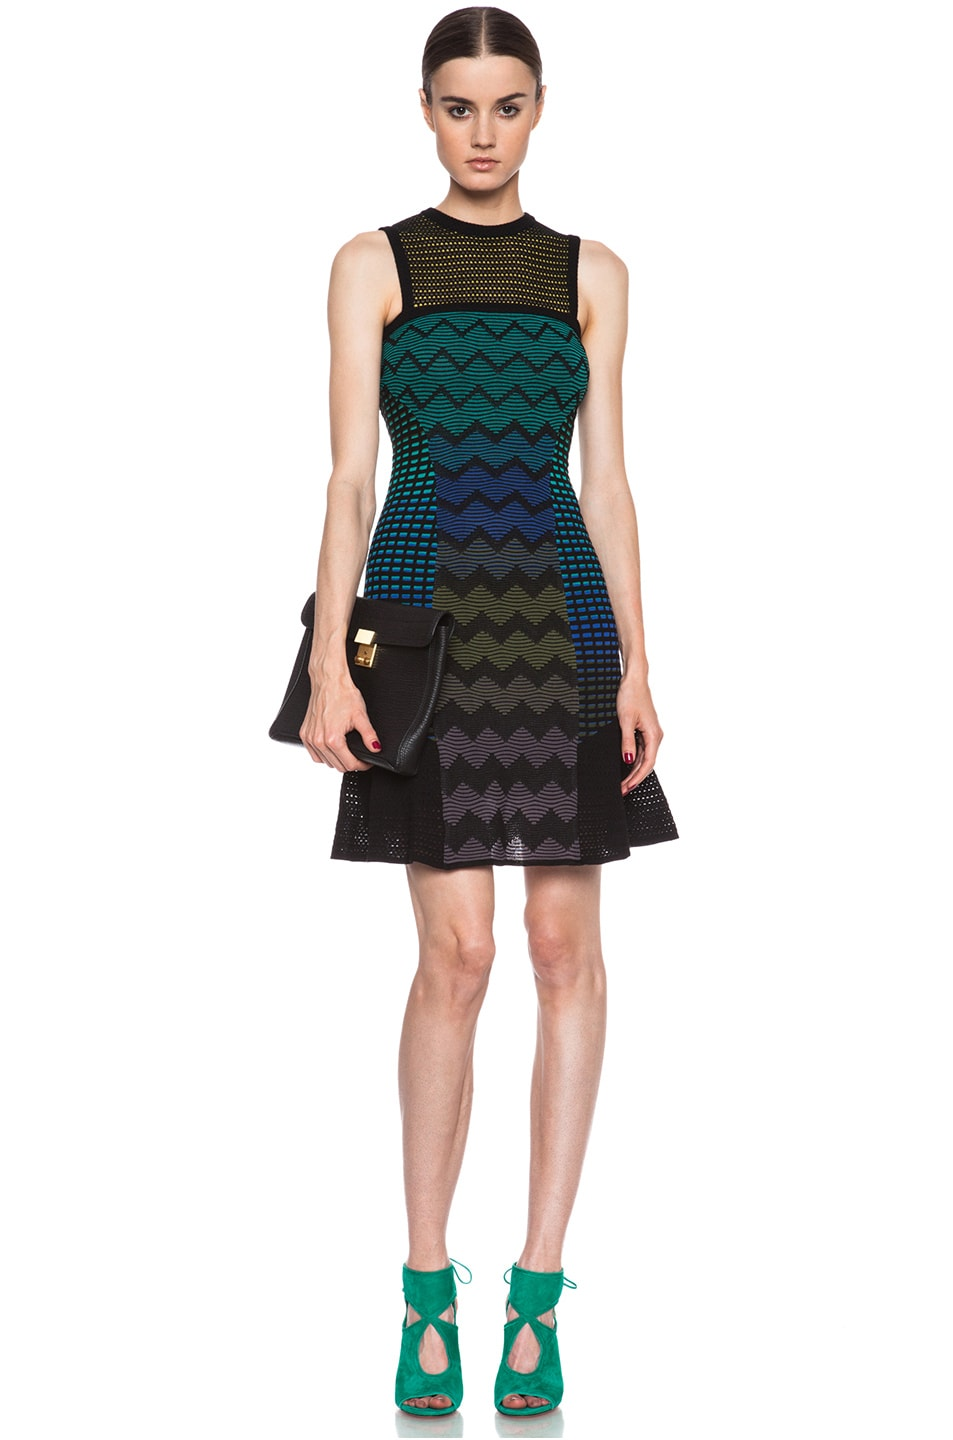 08bfdfaa1979e Image 1 of M Missoni Zig Zag Mix Media Knit Dress in Royal